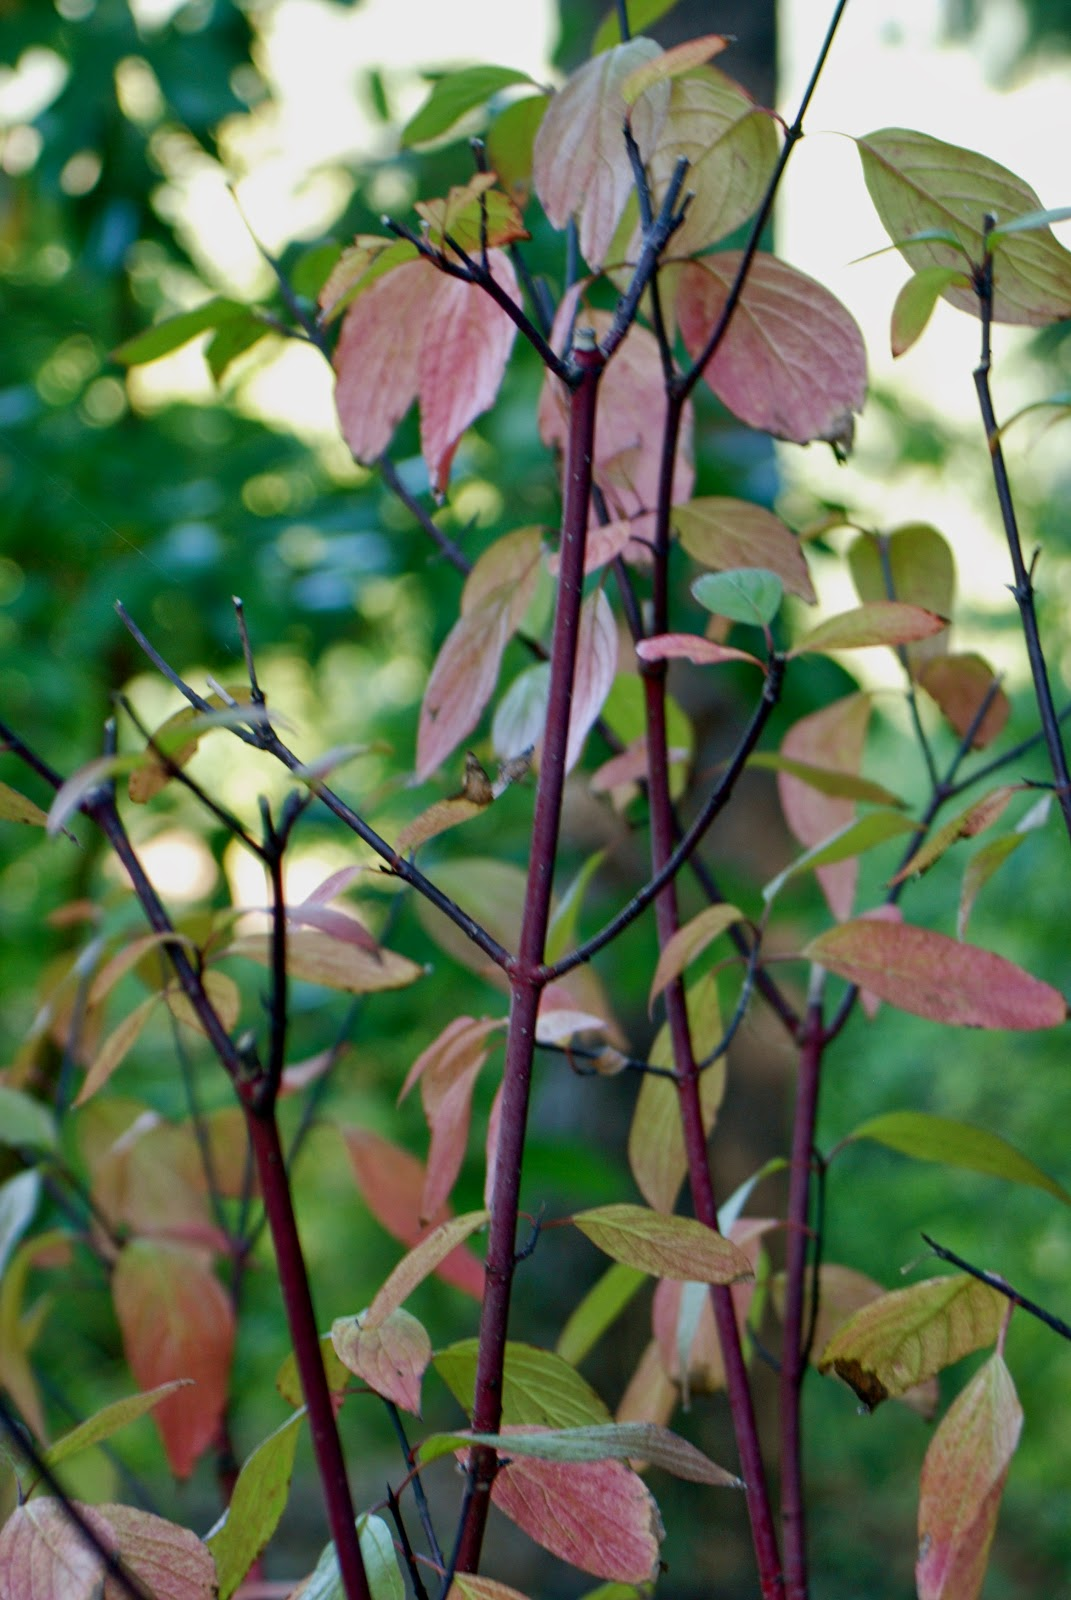 Colorful Dogwood Twigs in Fall and Winter | The Aspiring Gardener